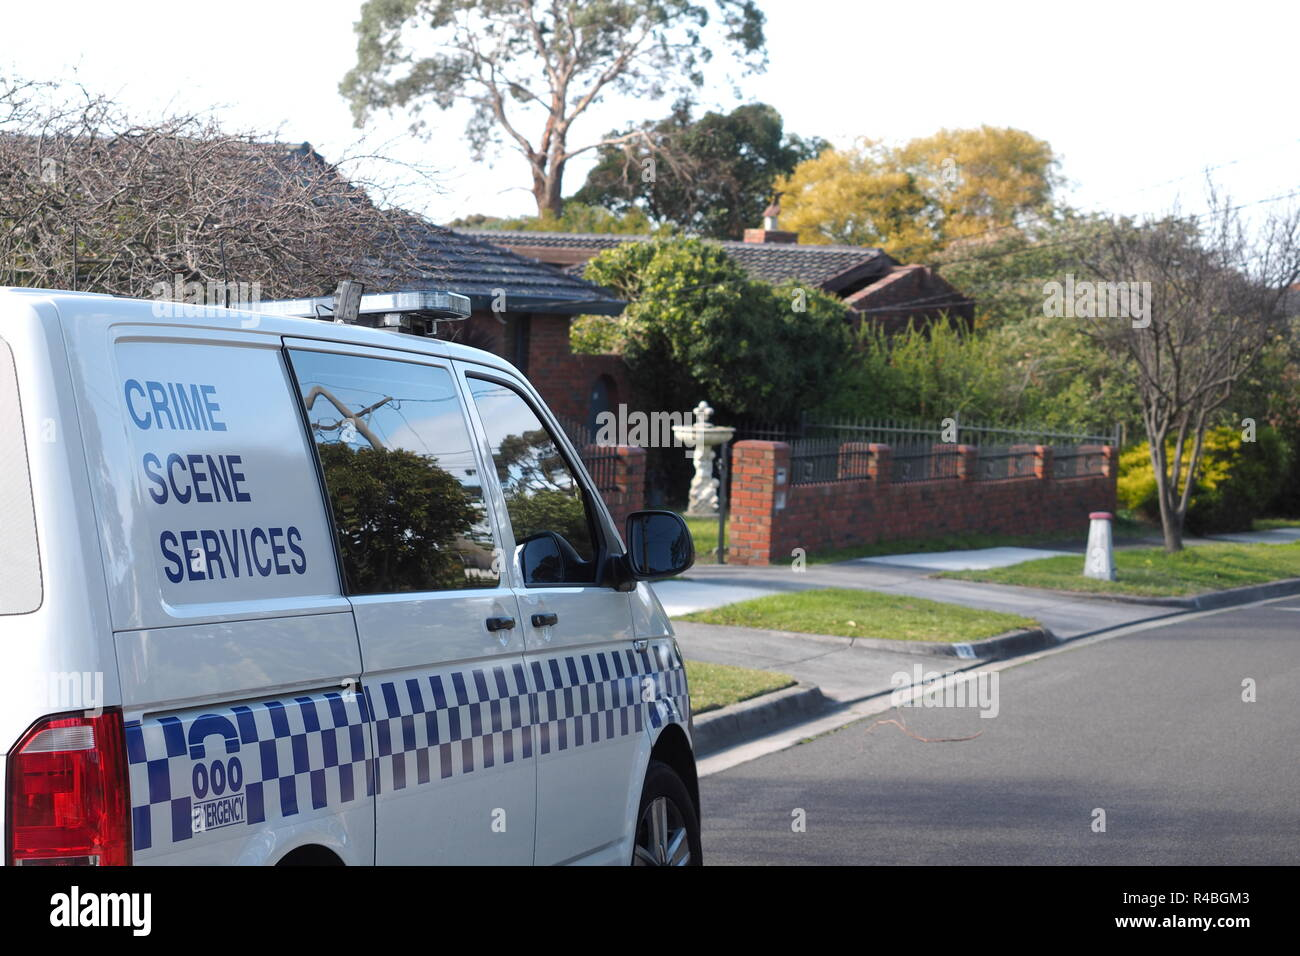 Melbourne, Australia - July25, 2018: Police crime scene services van in an suburban area of Glen Waverley in Melbourne east. - Stock Image